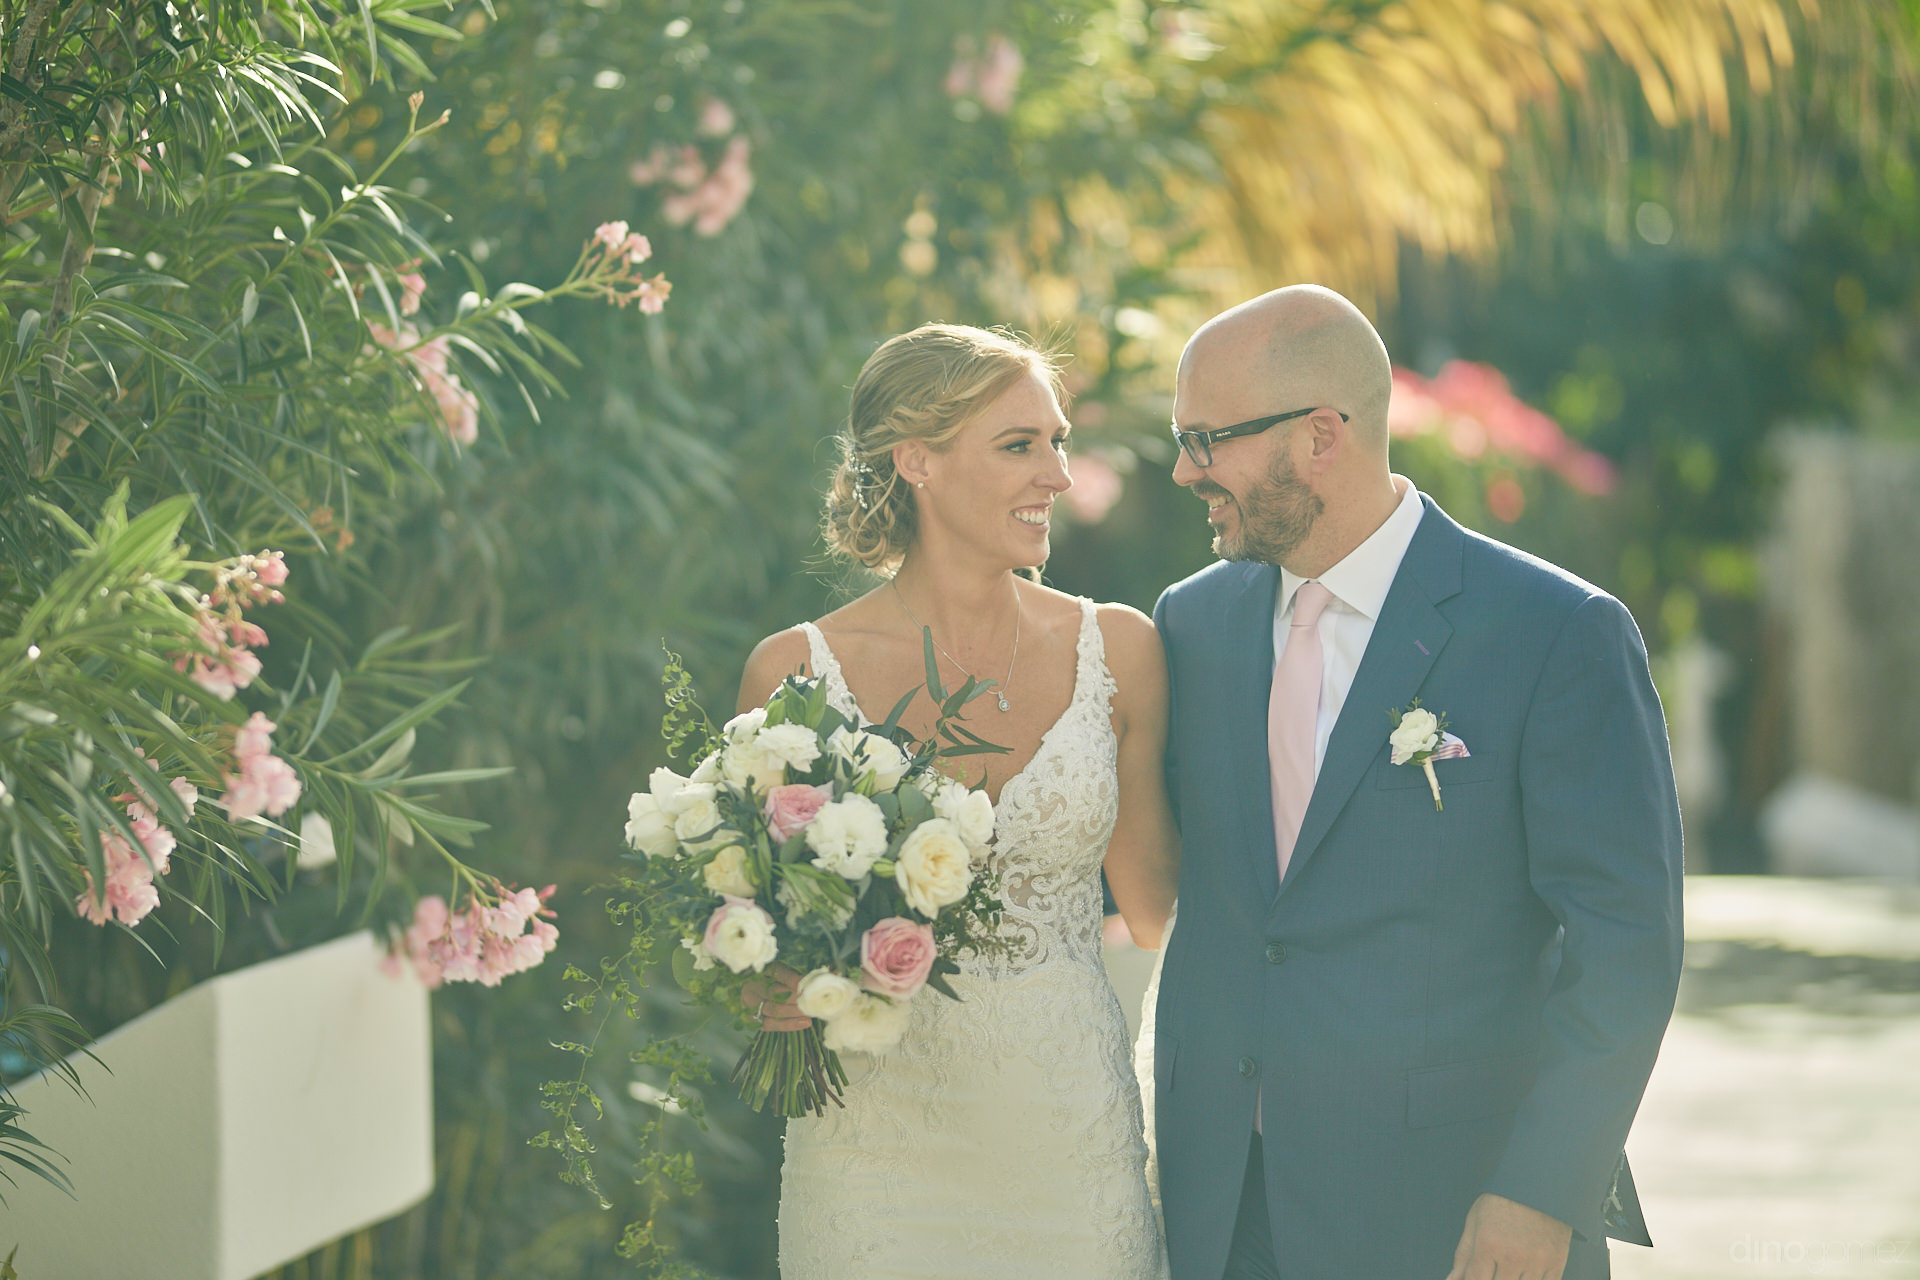 Cabo Wedding Planners Hired This Photographer And Were Surprised - Mm